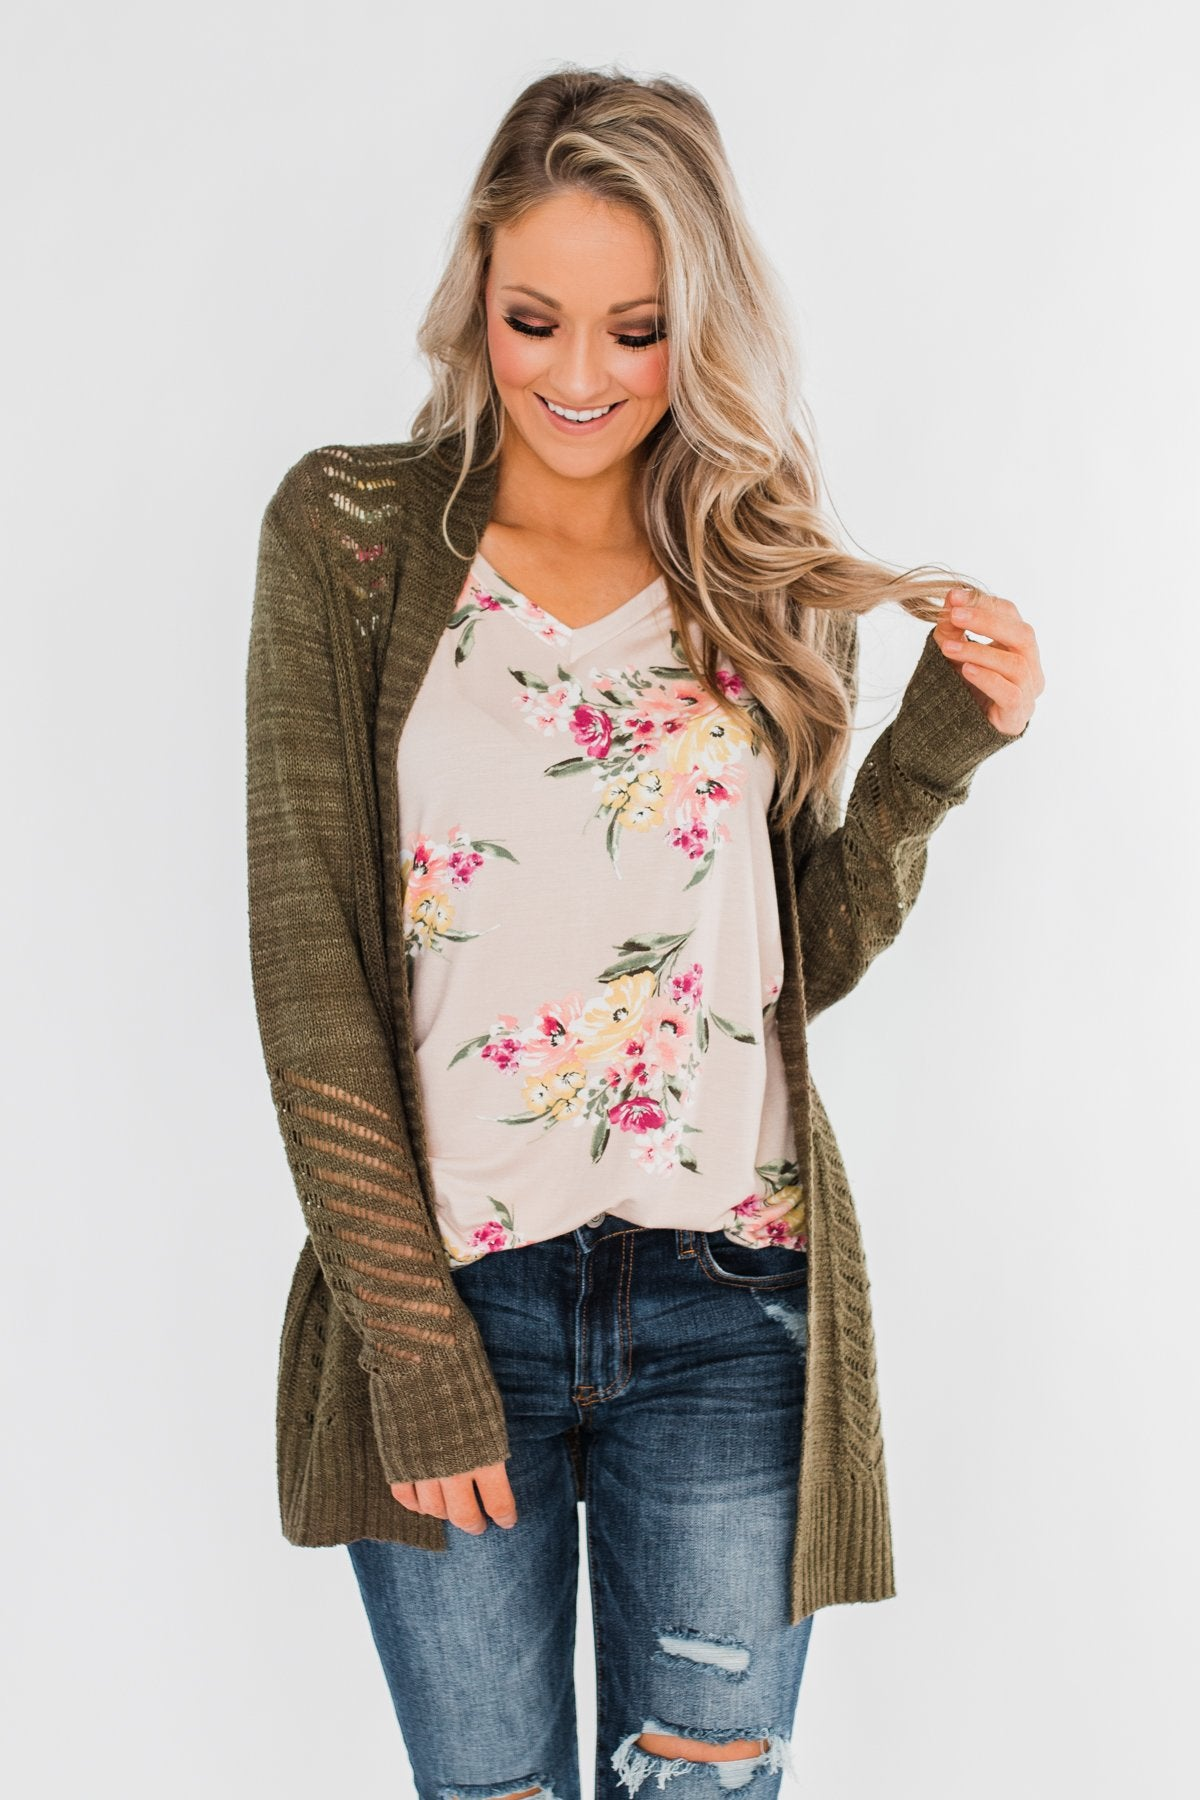 Falling For Floral V-Neck Top- Light Peach